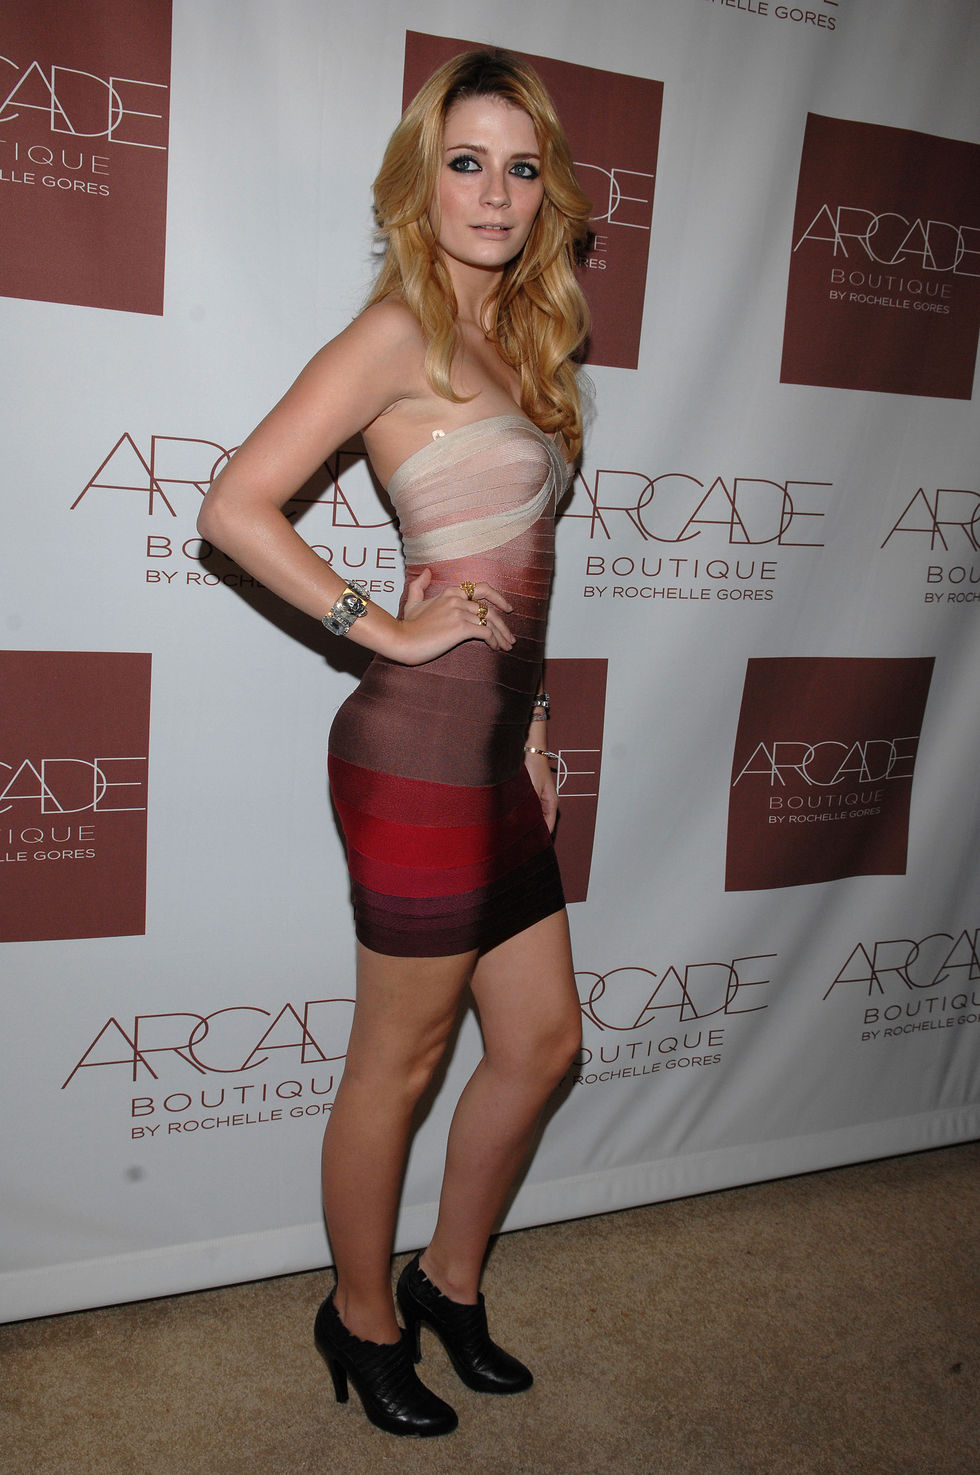 mischa-barton-arcade-boutique-grand-opening-in-los-angeles-01